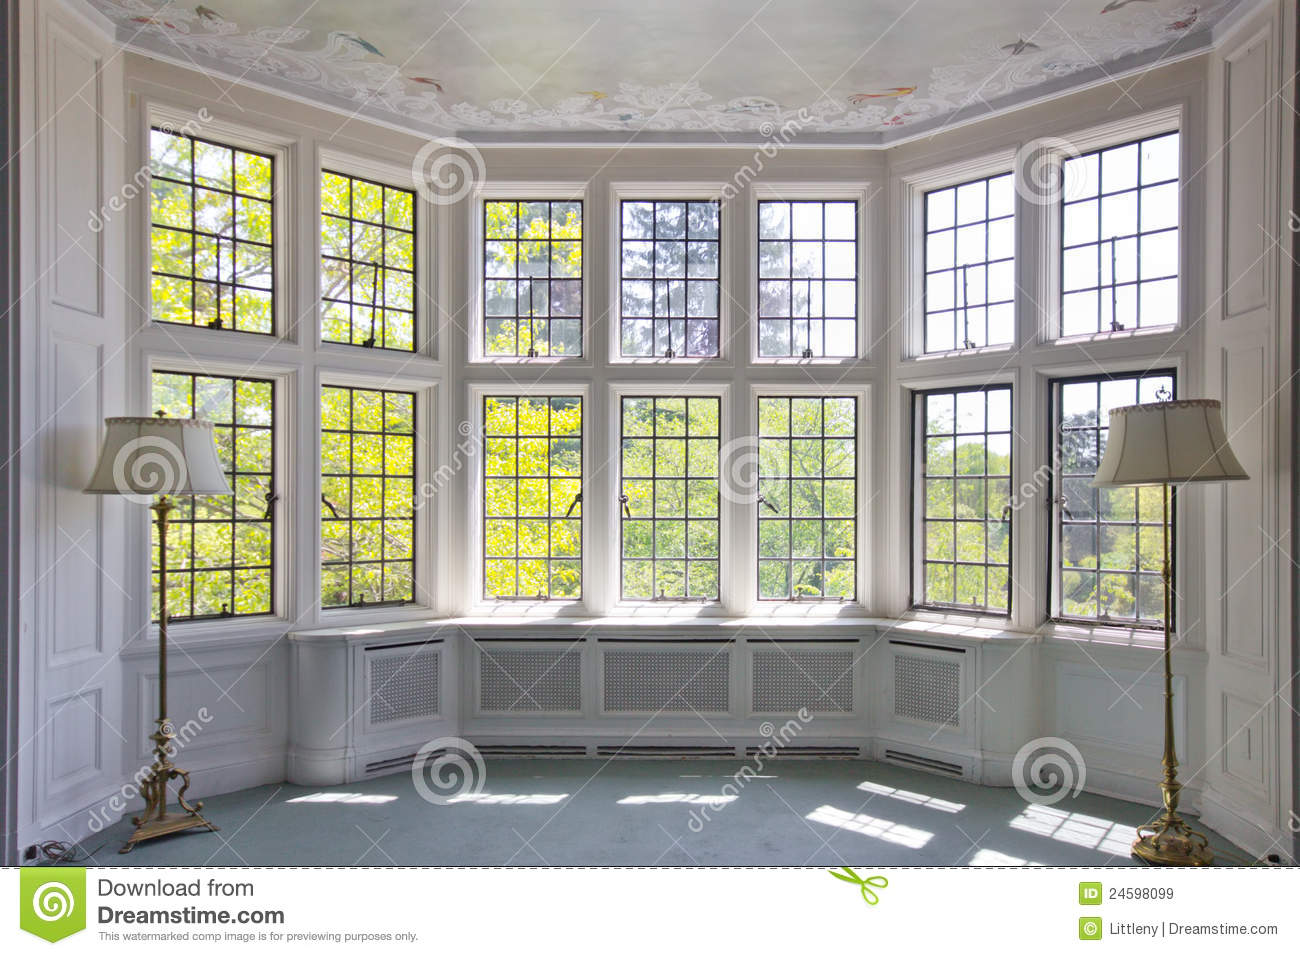 french pane window interior stock image image 24598099